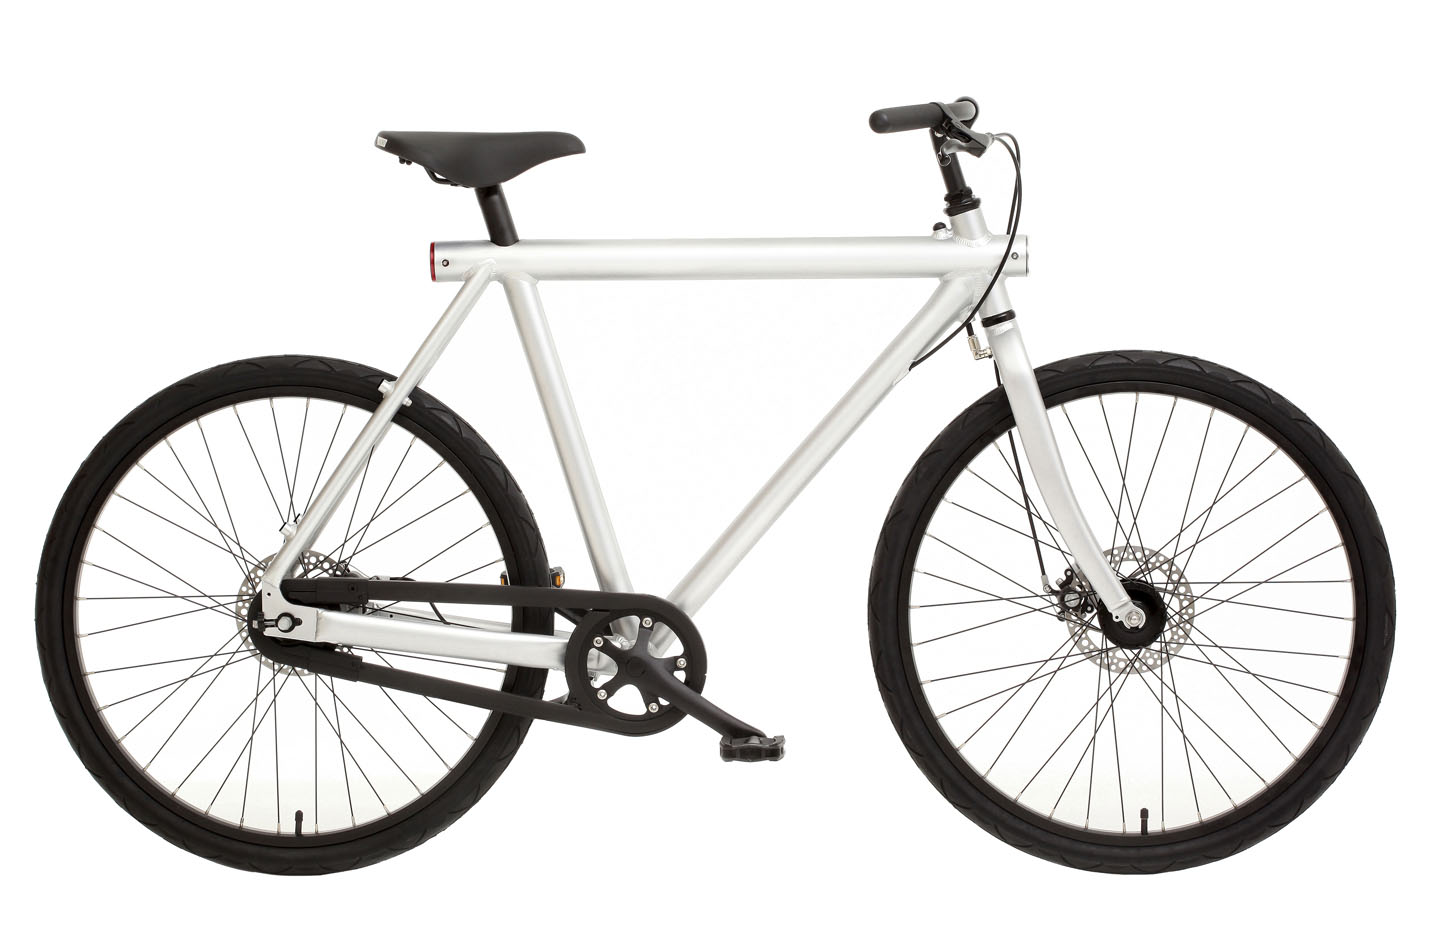 Vanmoof 3.7 City Bike Review